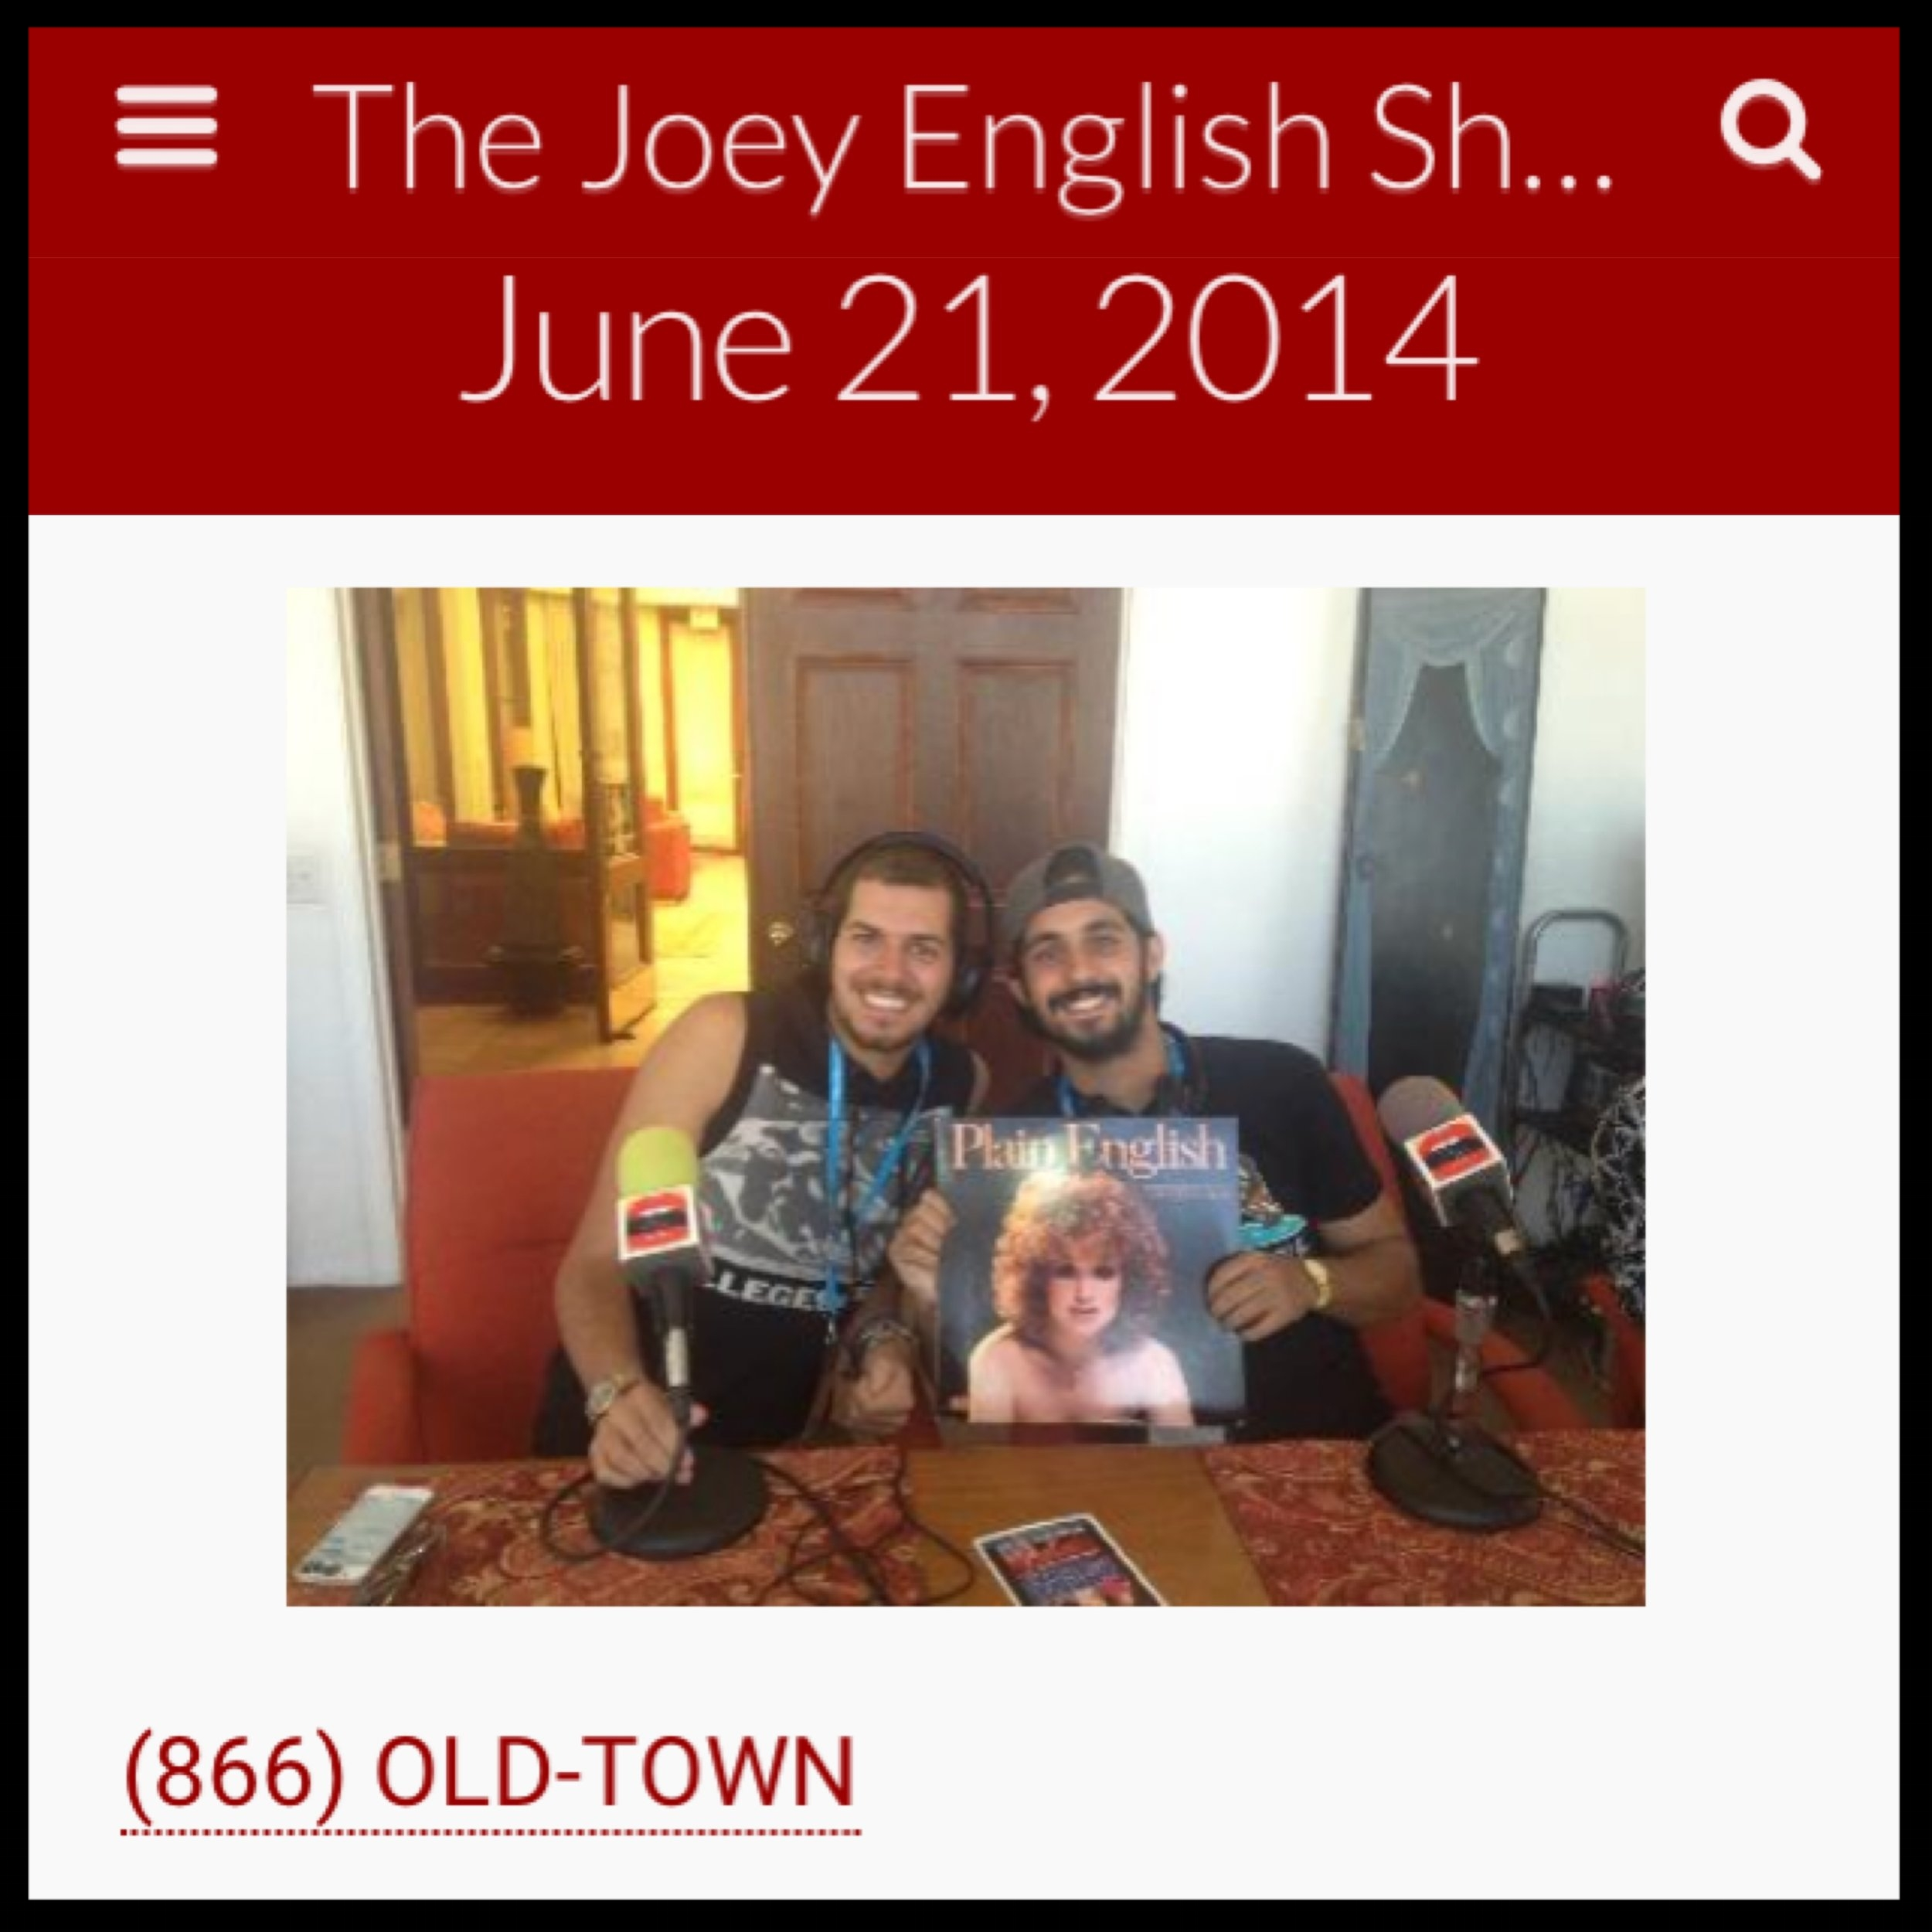 JOEY ENGLISH RADIO - ASSAAD YACOUB